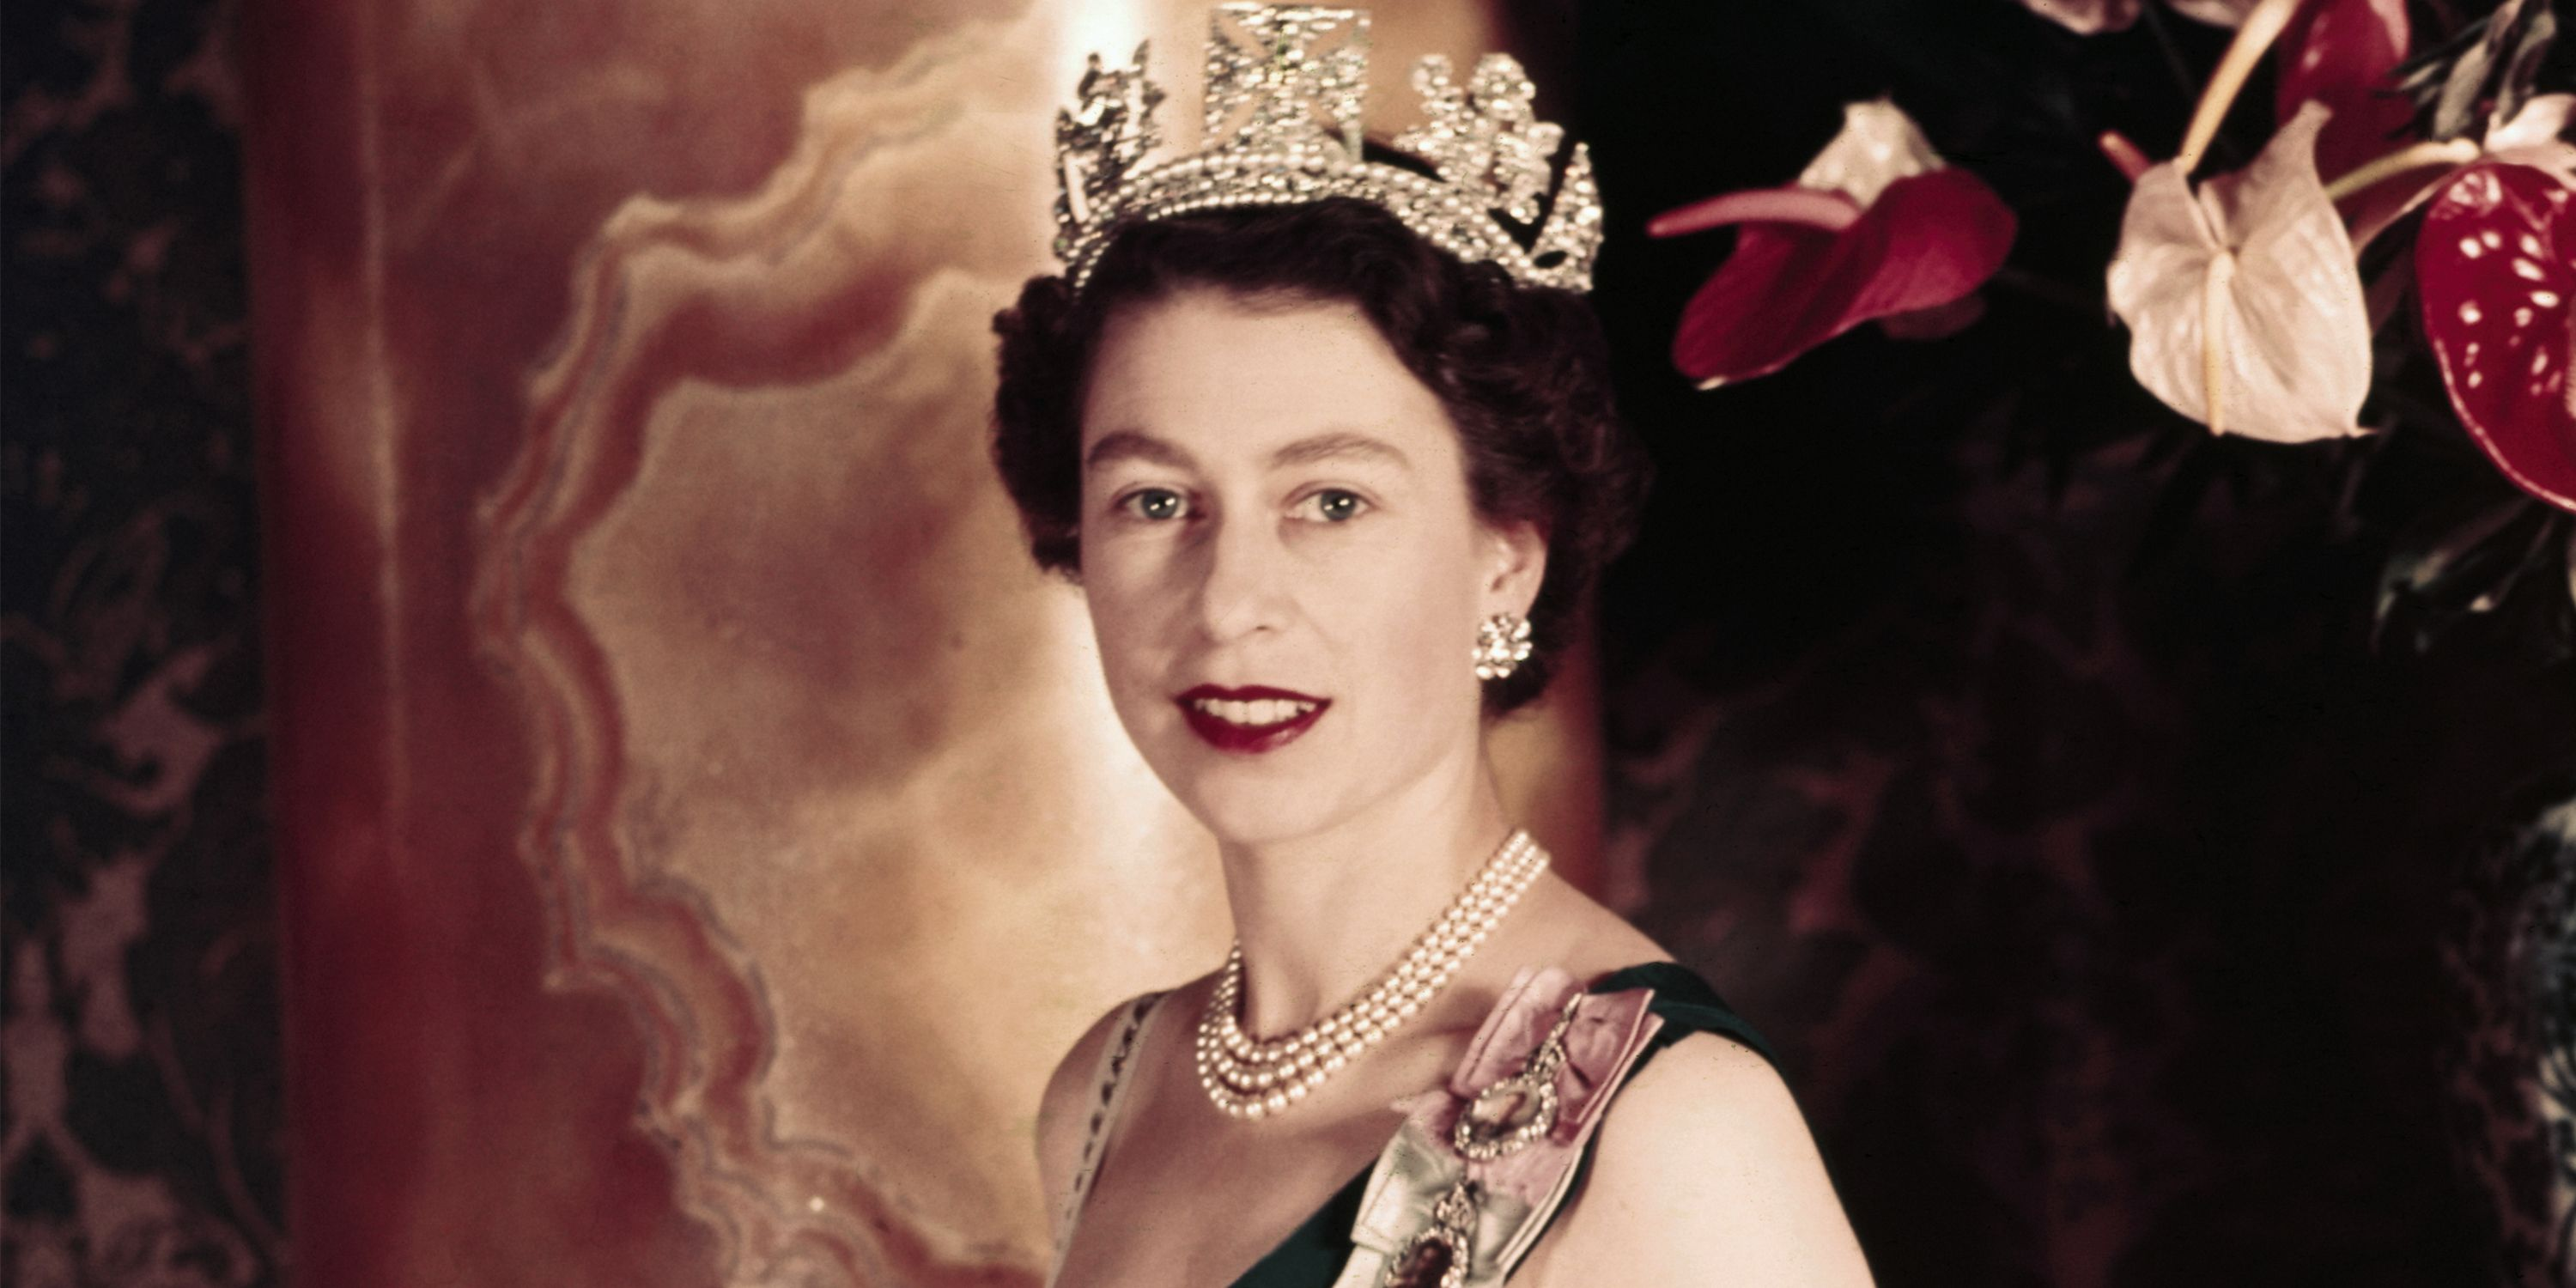 hbz-queen-elizabeth-through-the-years-00-index-gettyimages-515462734-1555601021